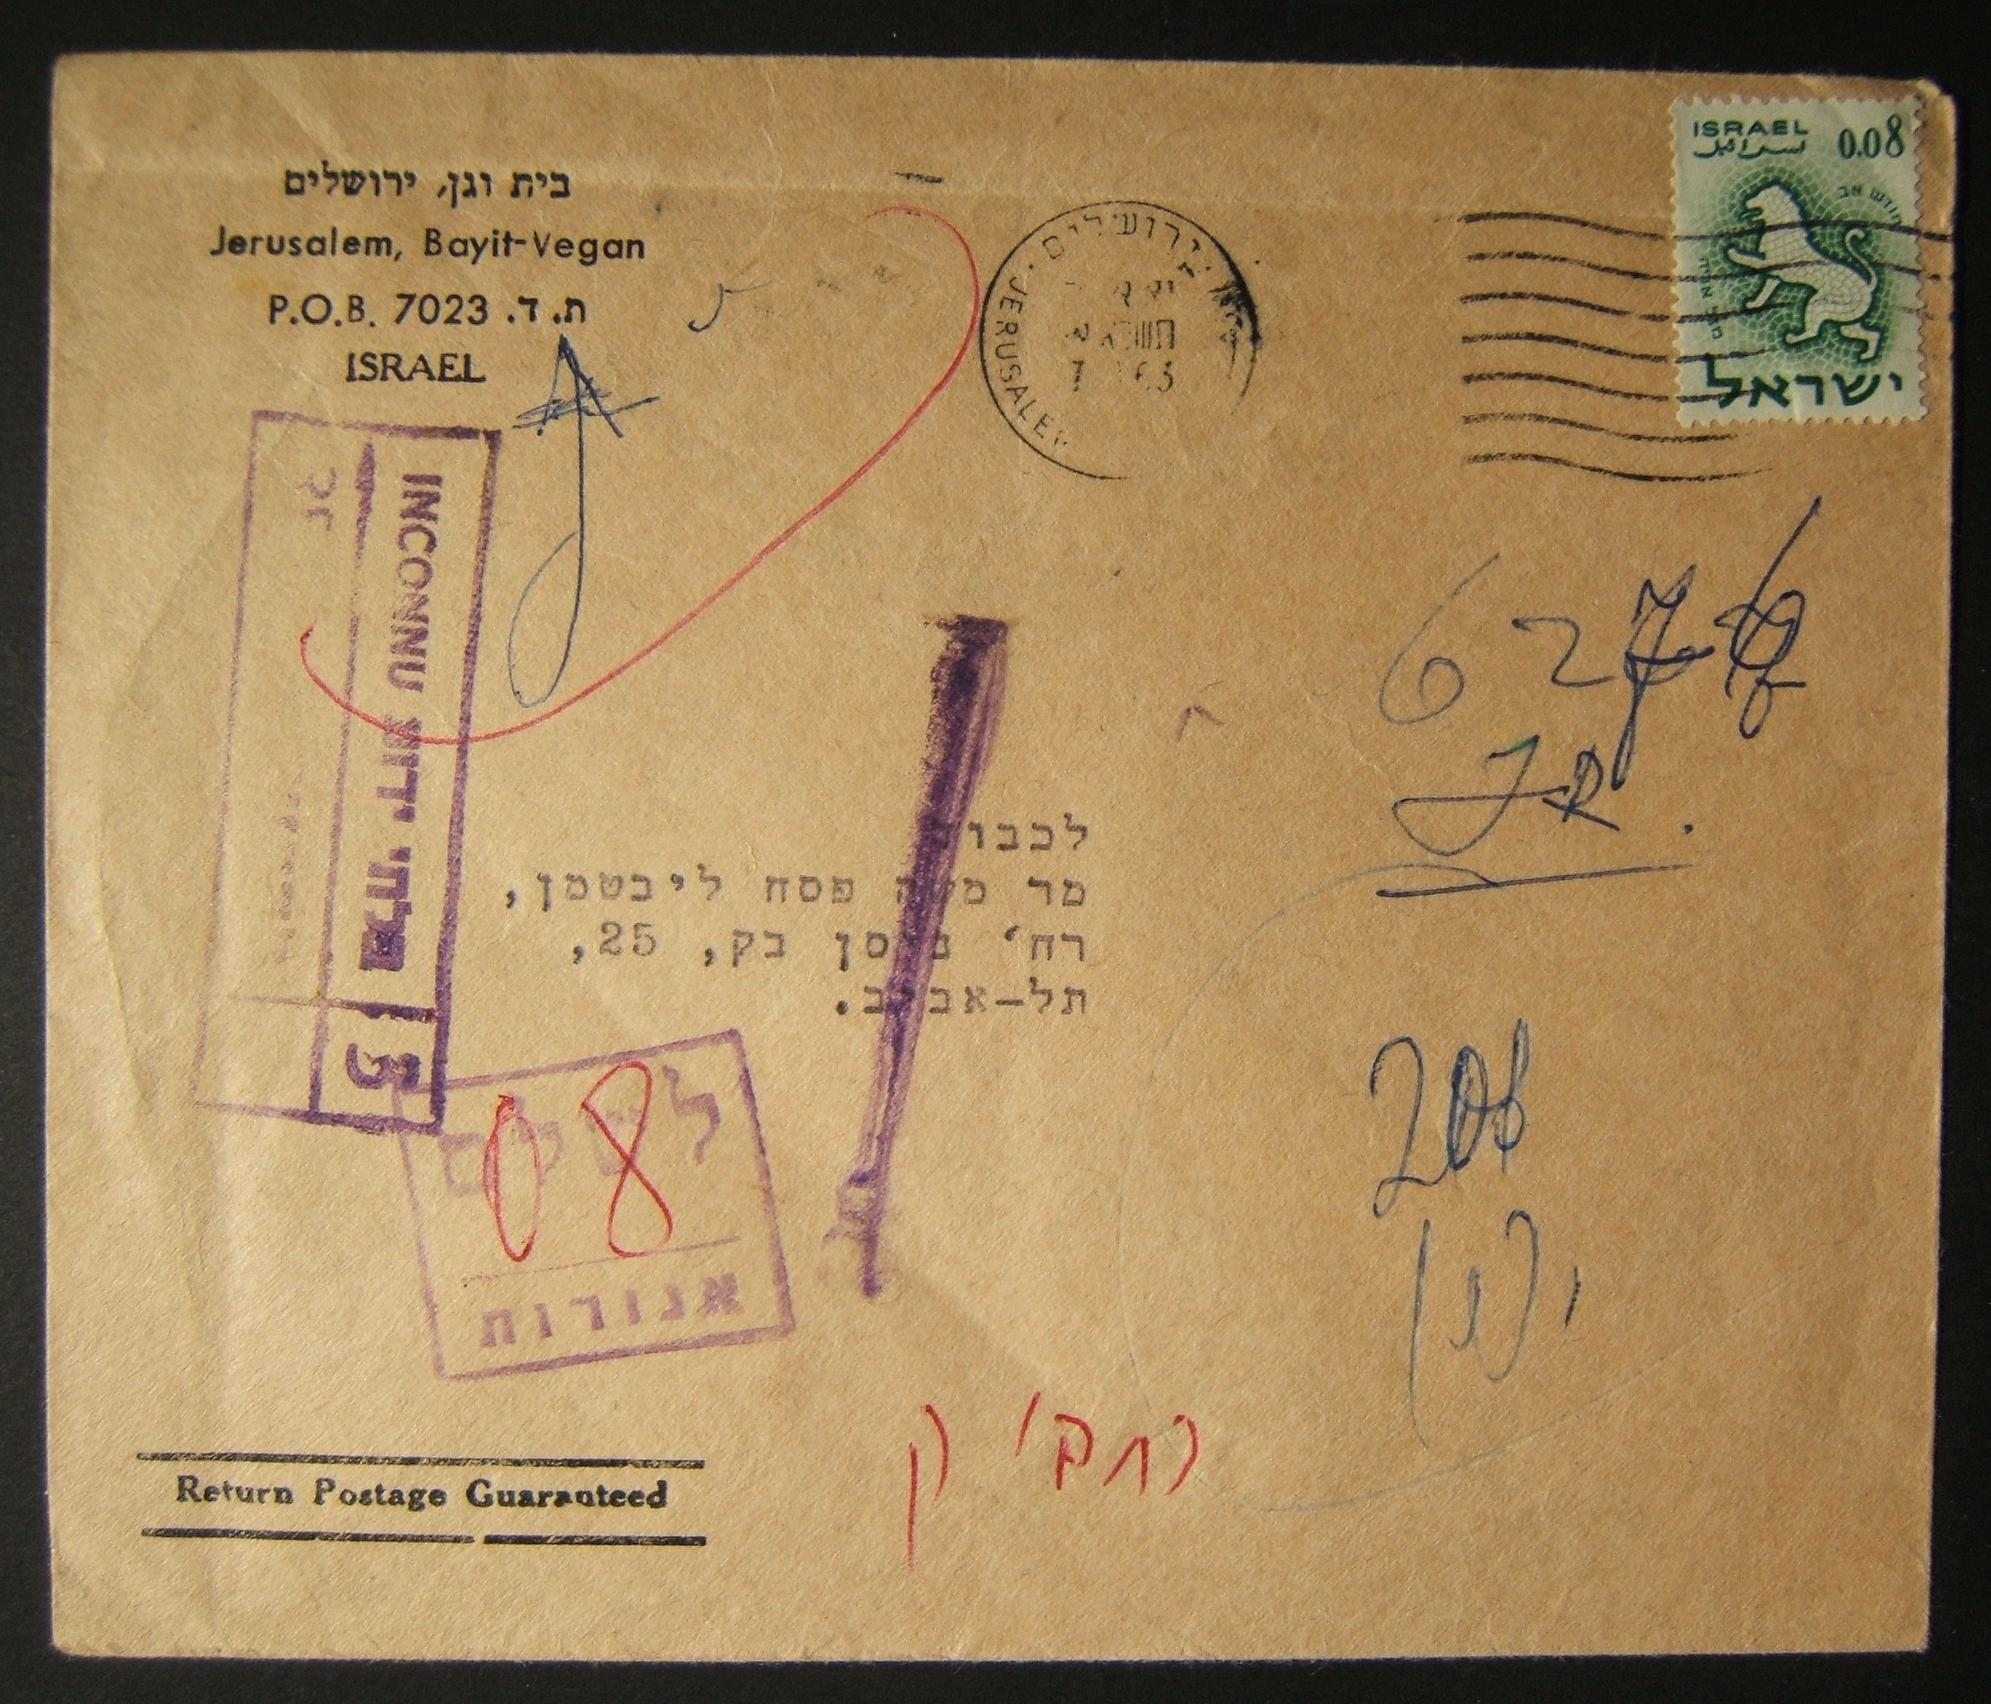 1963 return fee cover: 7-3-1963 commercial printed matter stationary cover ex JERUSALEM to TLV franked 8Ag at the DO-11 period pm rate using single Zodiac frank (Ba208); address un